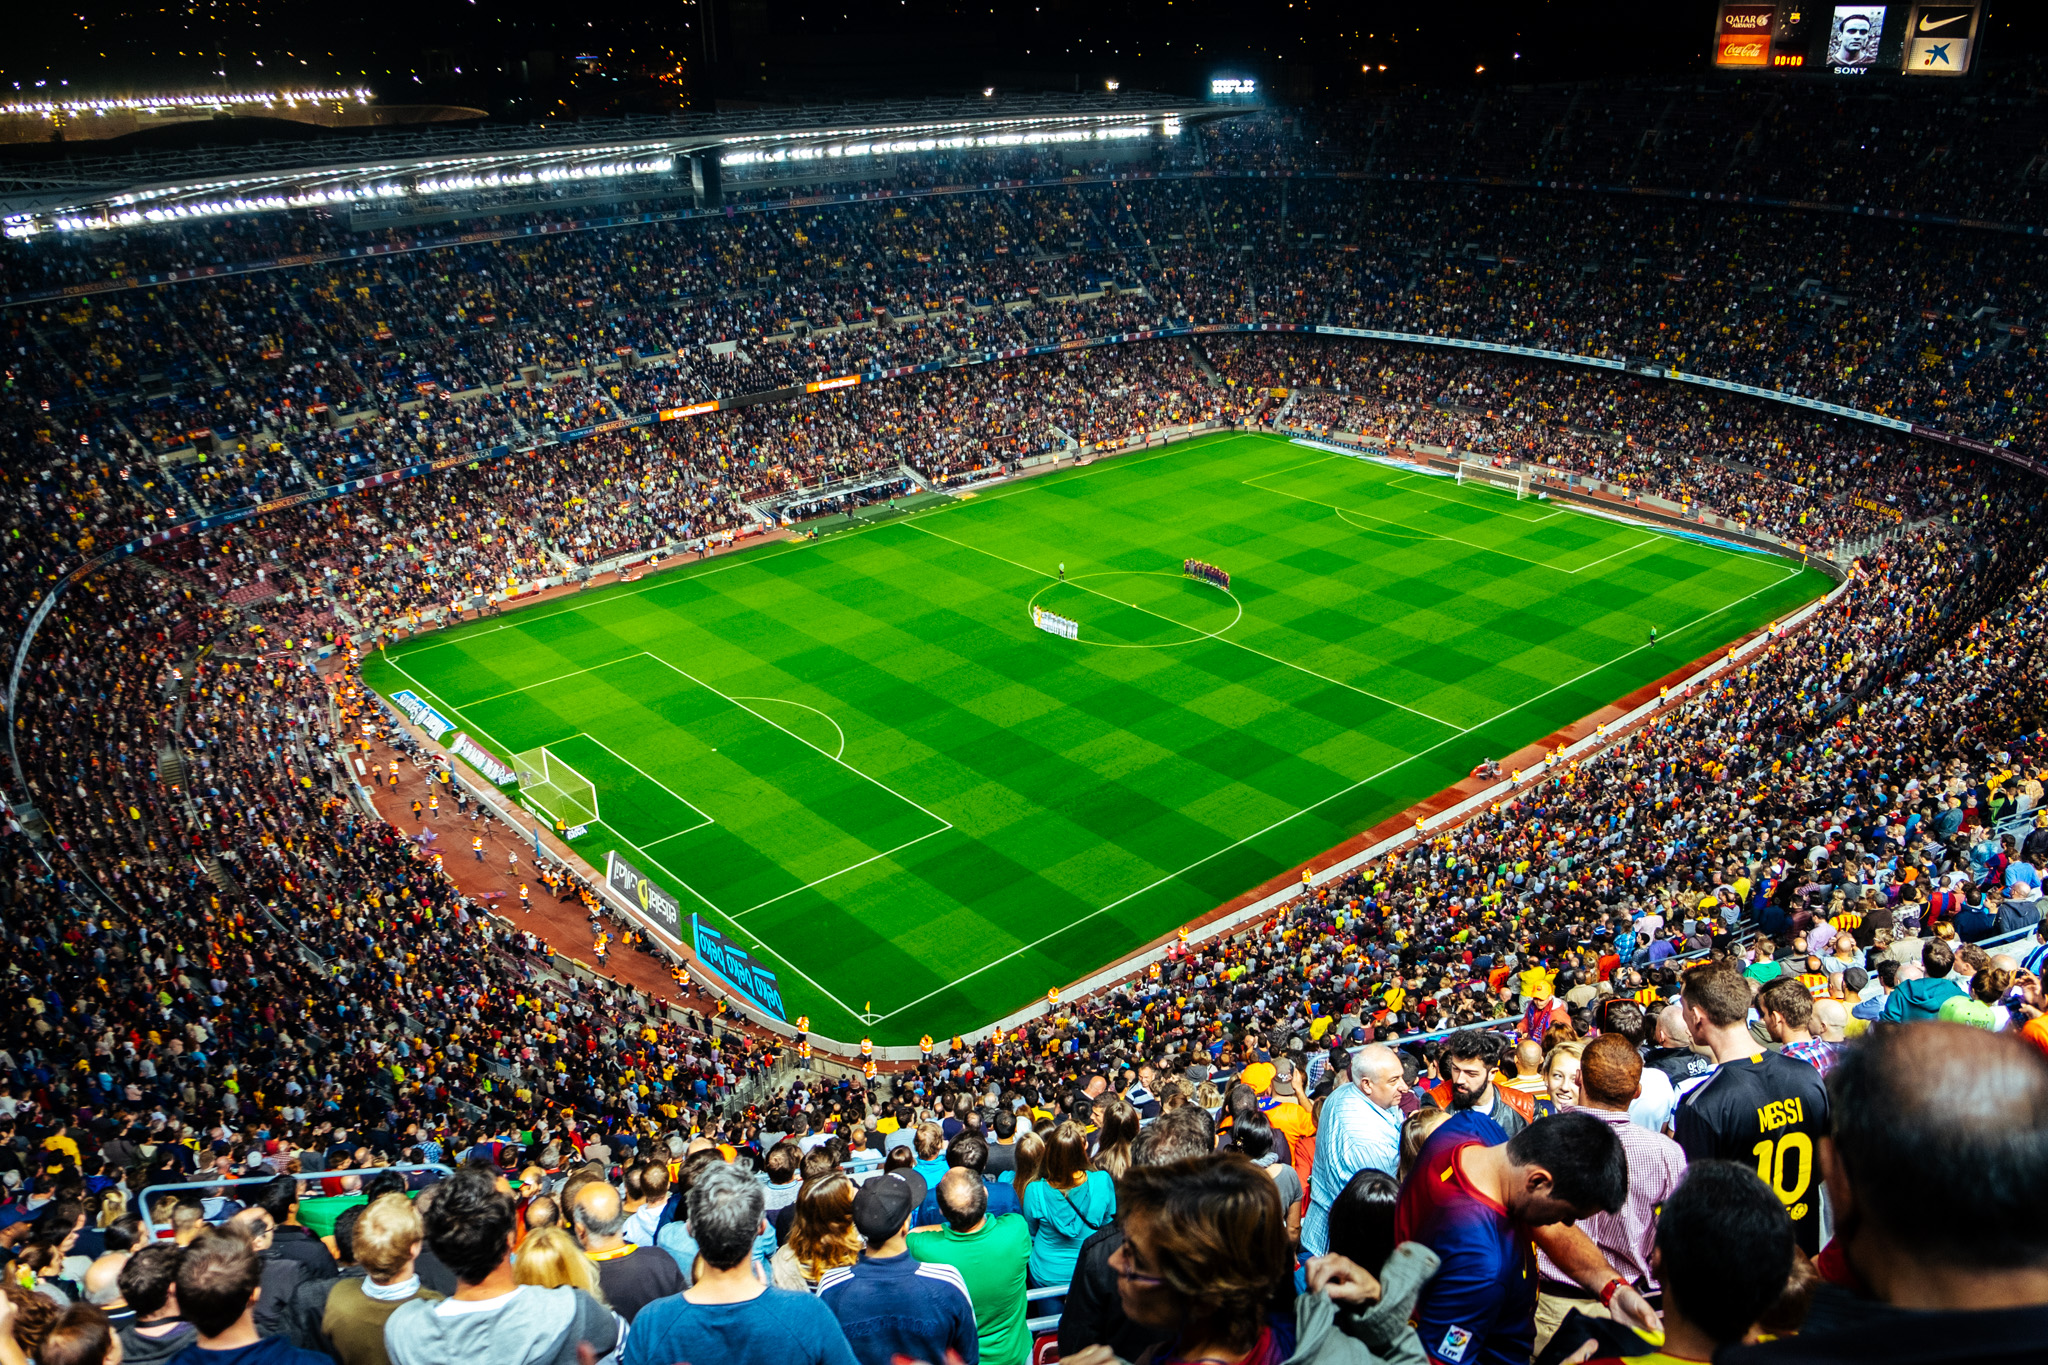 No trip to Barcelona is complete without watching a game at Camp Nou - home to FC Barcelona and the largest stadium in Europe. It can house over well over 99000 fans! This match was between FC Barcelona and Celta Vigo and to my disappointment, Barcelona lost the match this time round.